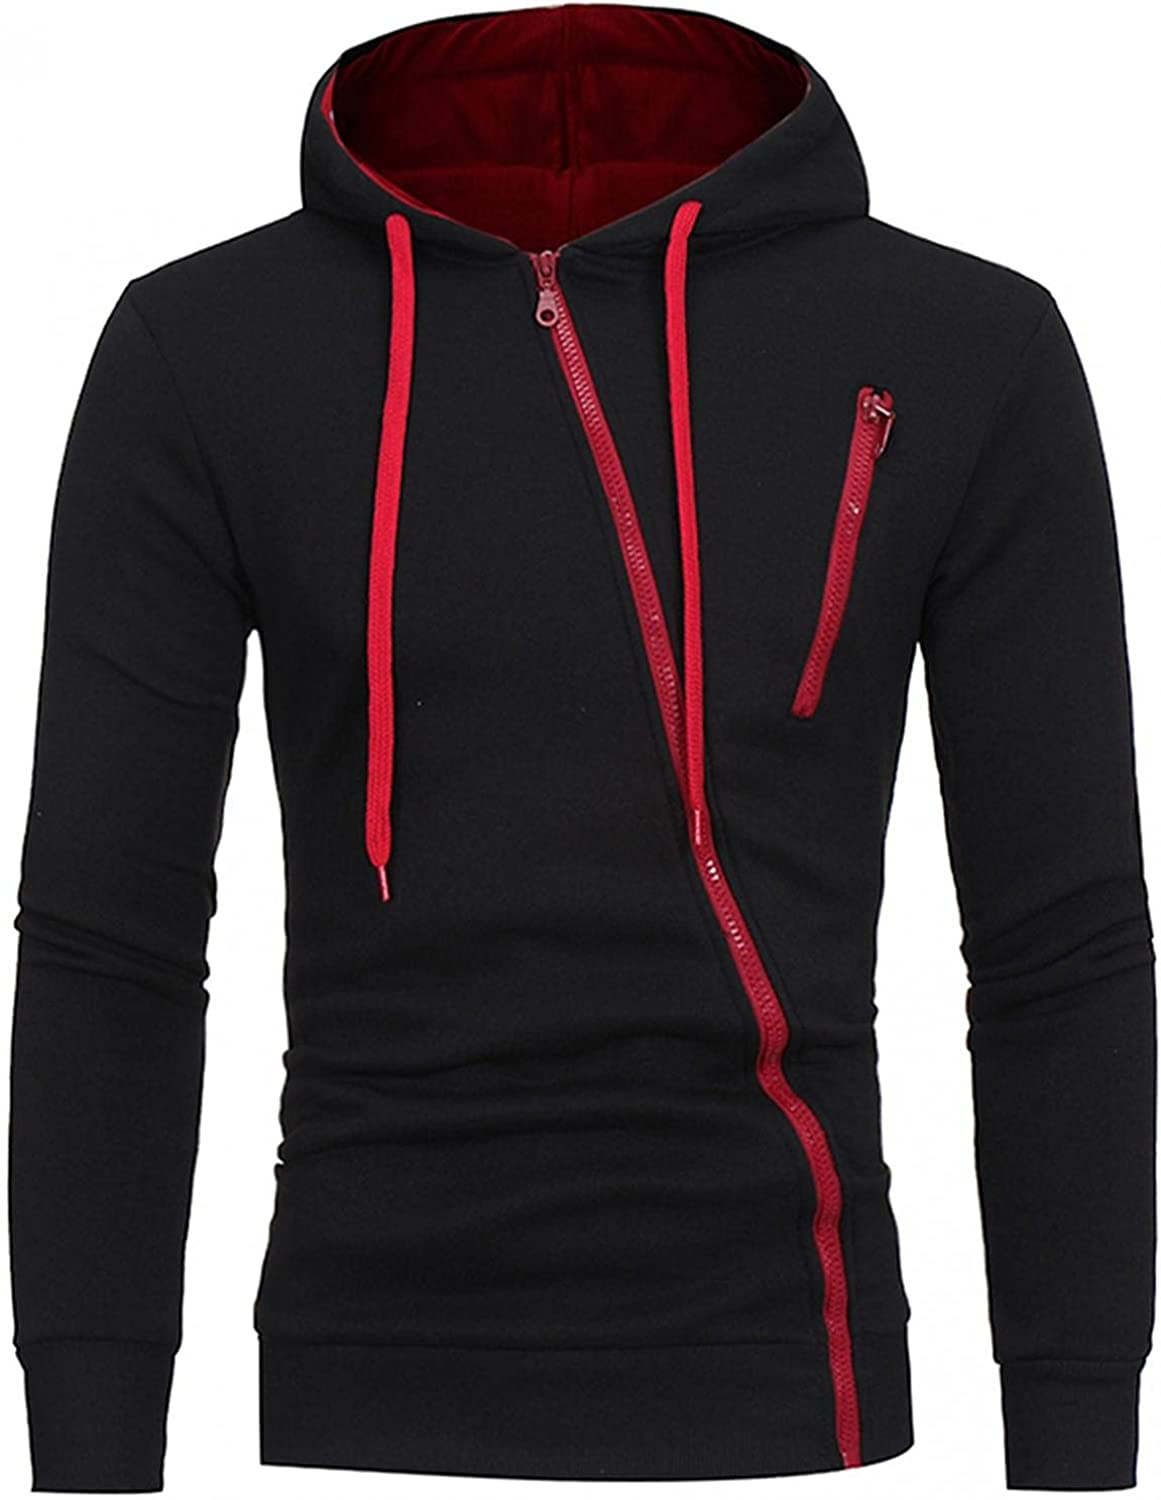 Aayomet Hoodies Sweatshirts for Men Fashion Solid Tops Zipper Long Sleeve Workout Athletic Hooded Pullover Blouses